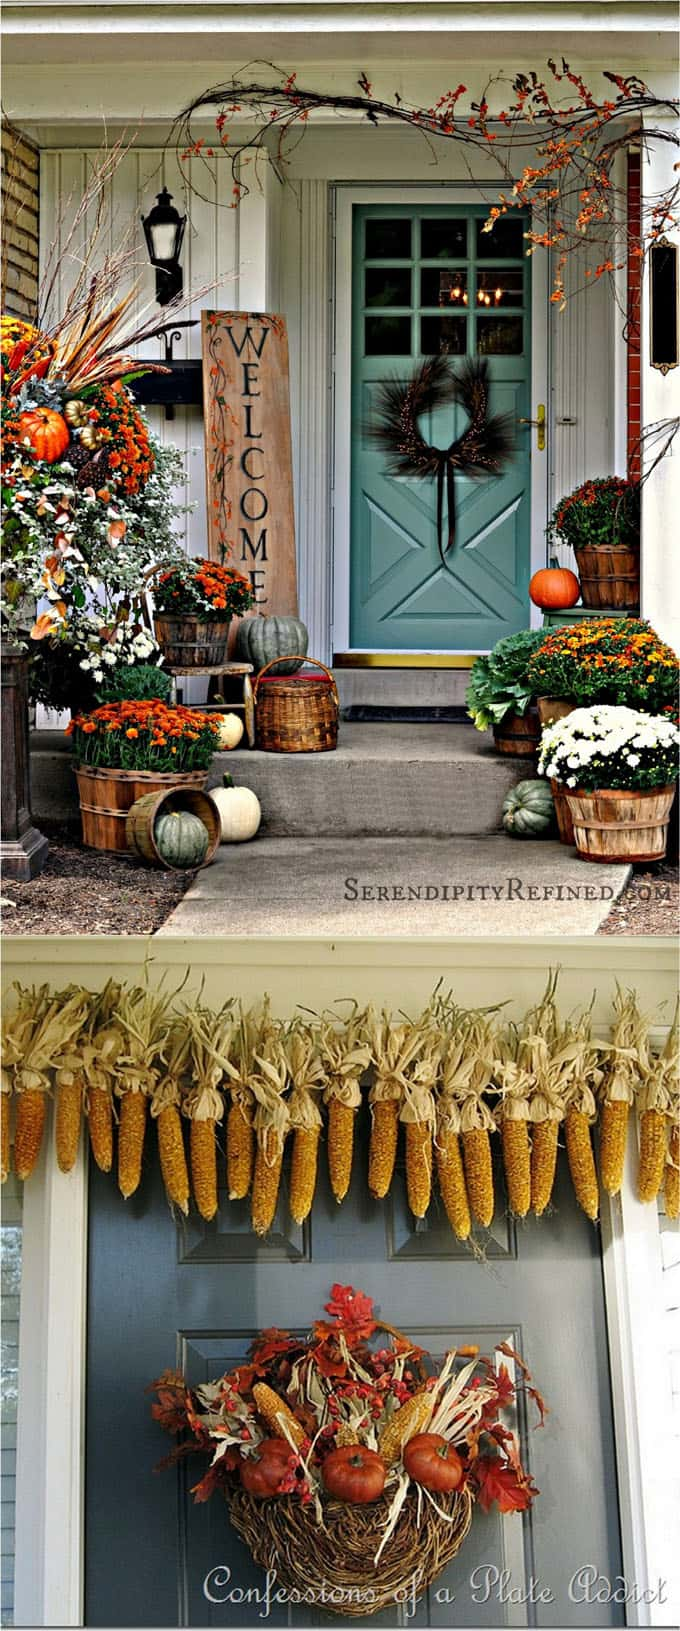 25 Front Door Fall Decorations Apieceofrainbow 4